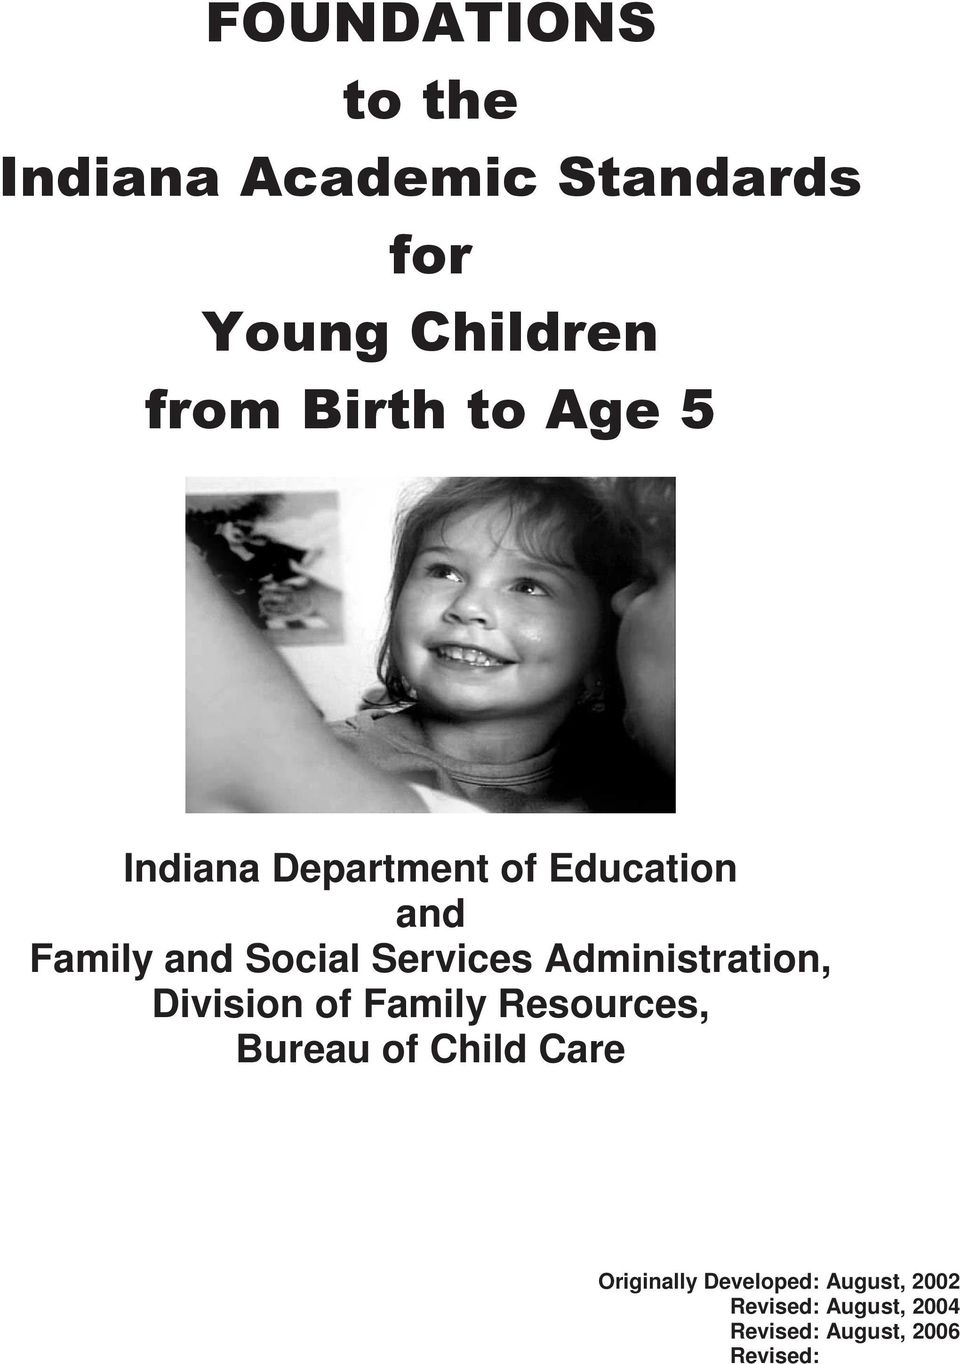 Administration, Division of Family Resources, Bureau of Child Care